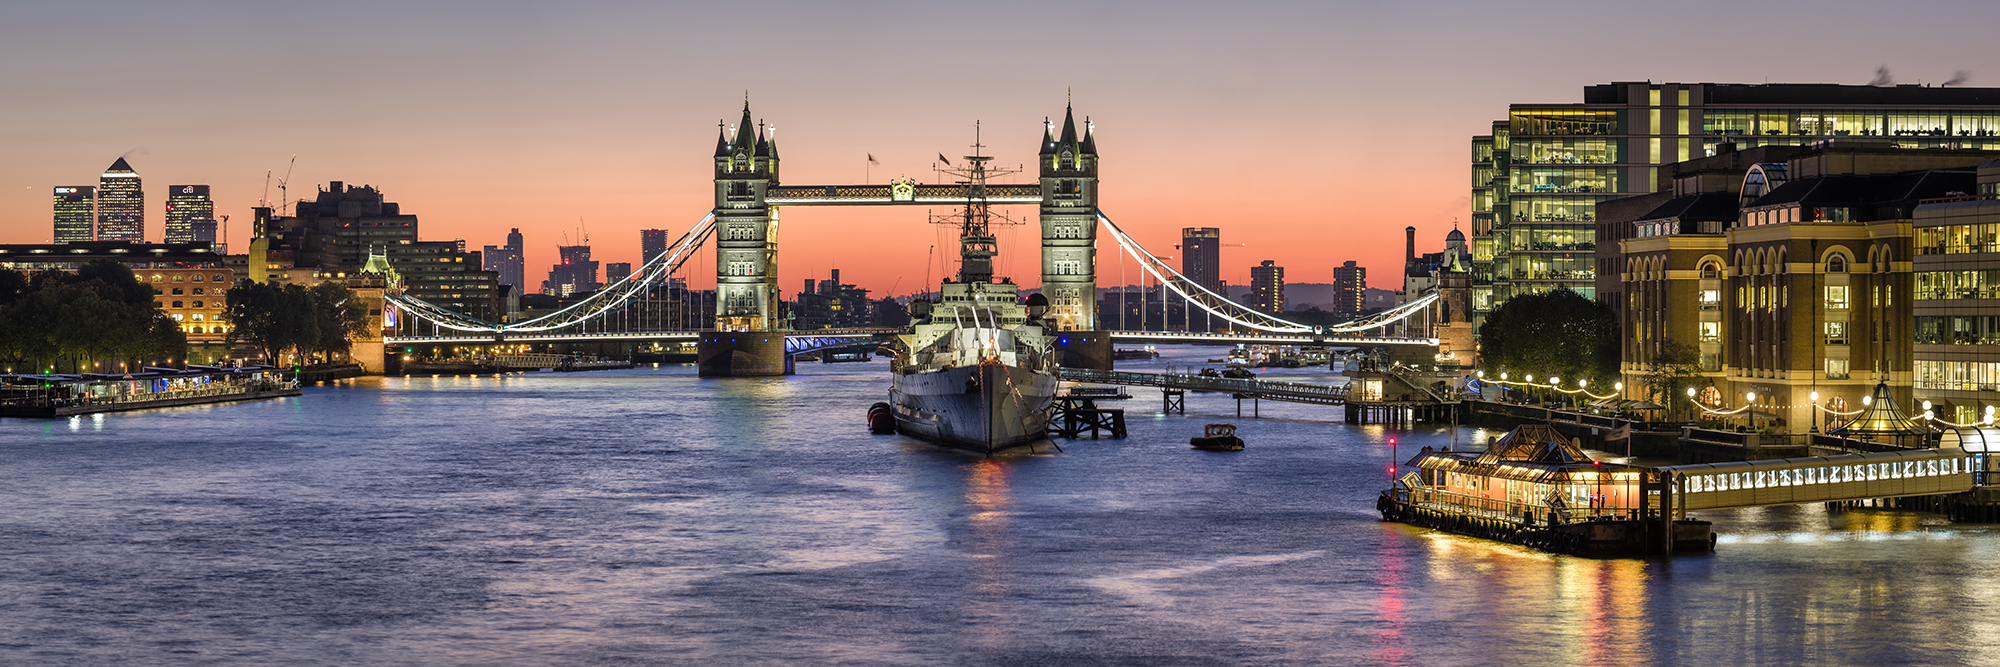 A London Panoramic at Sunrise - Tower Bridge and HMS Belfast by Trevor Sherwin